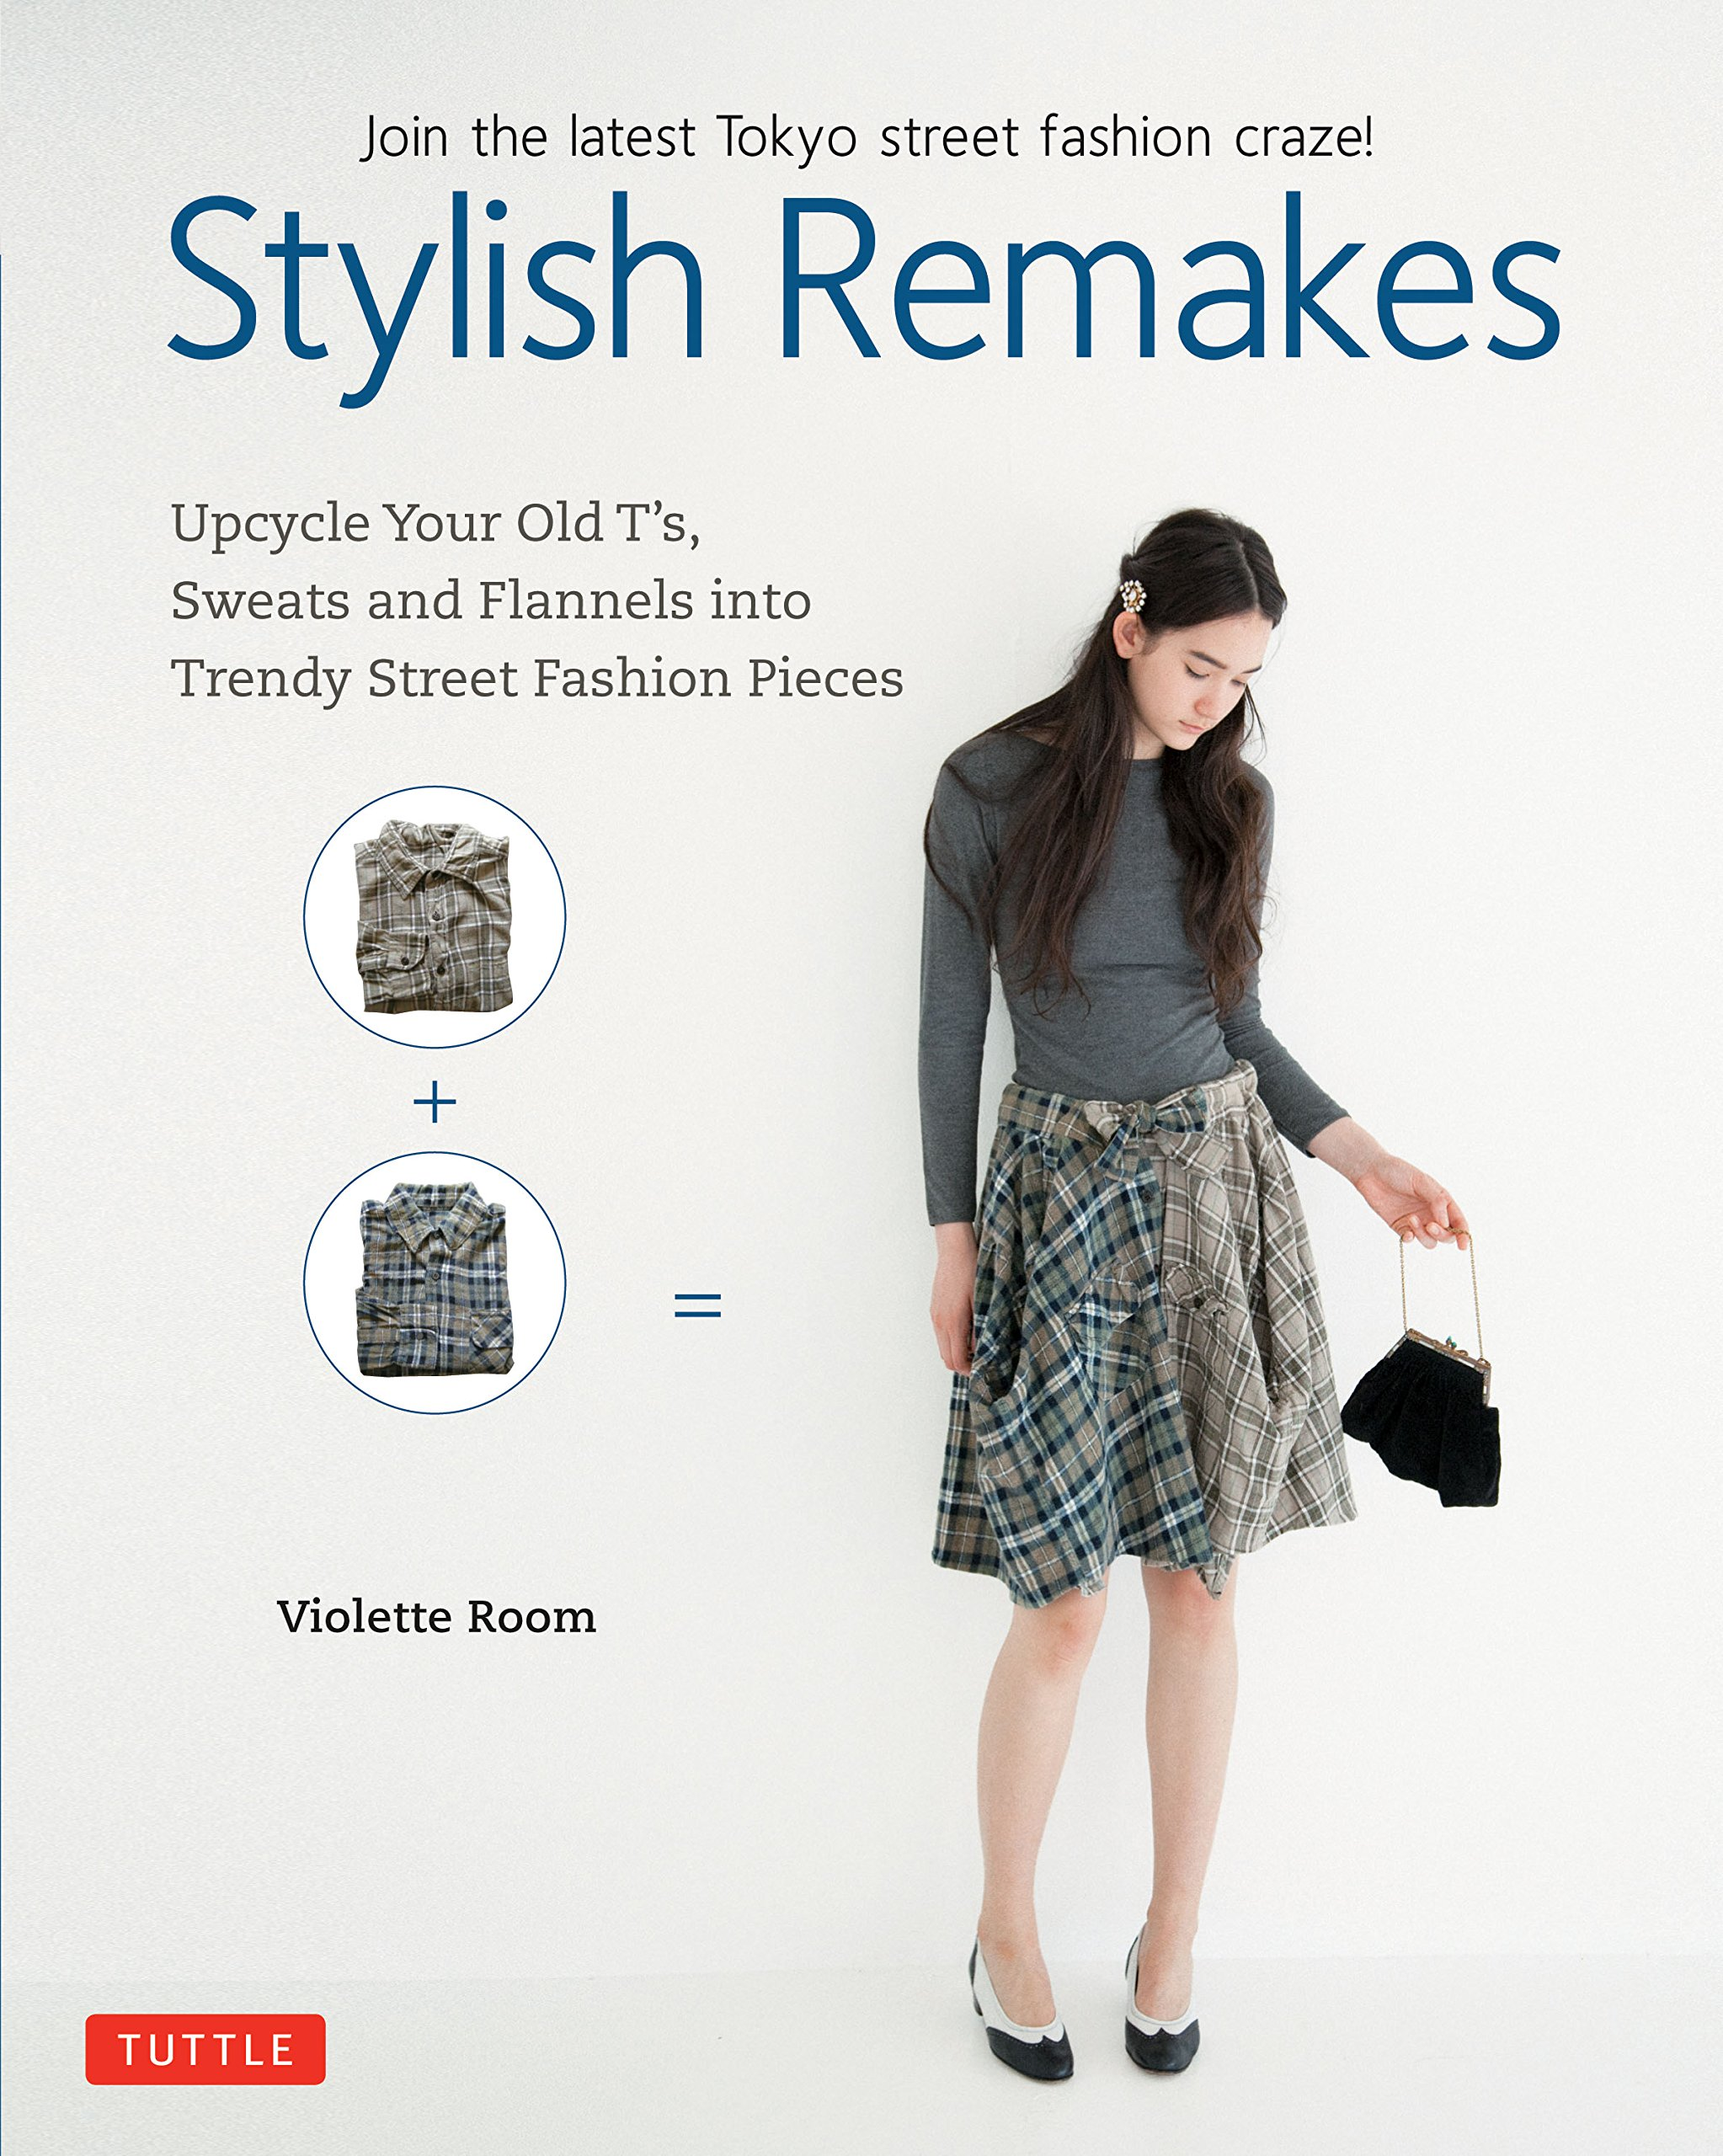 Stylish Remakes: Upcycle Your Old T's, Sweats and Flannels into Trendy Street Fashion Pieces ebook